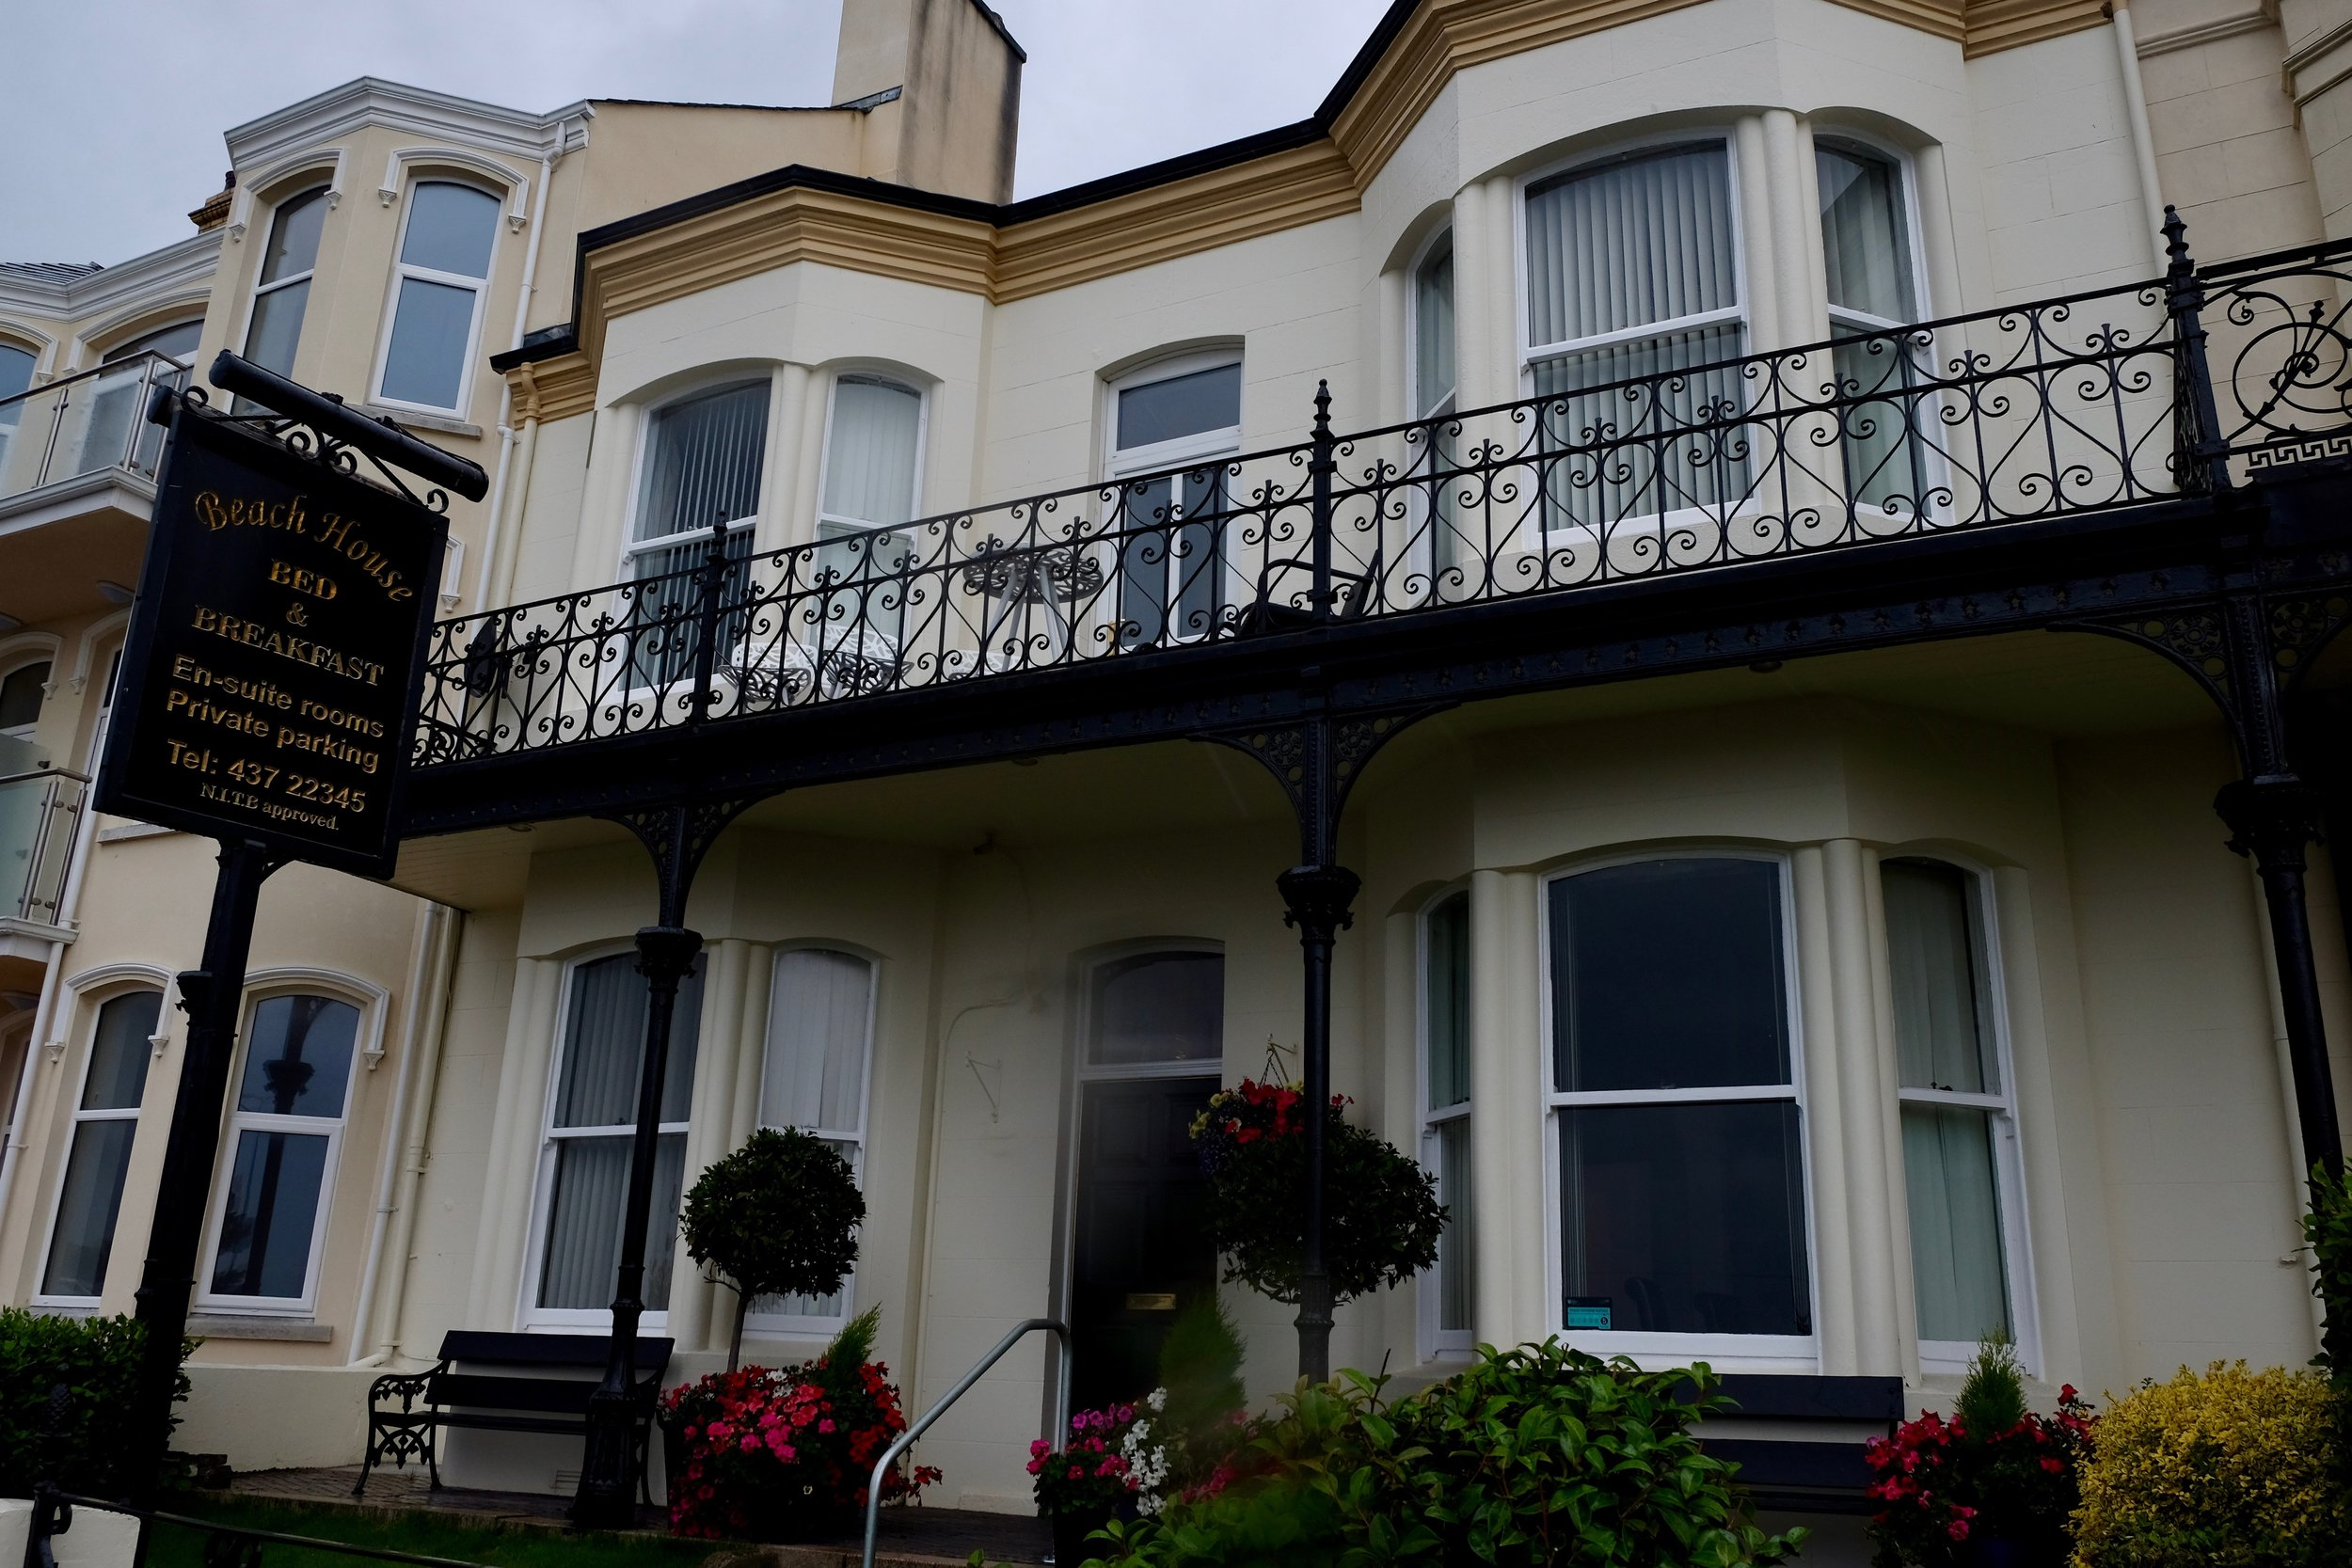 Beach House Bed and Breakfast,22 Downs Road,Newcastle BT33 0AG,+44 28 4372 2345